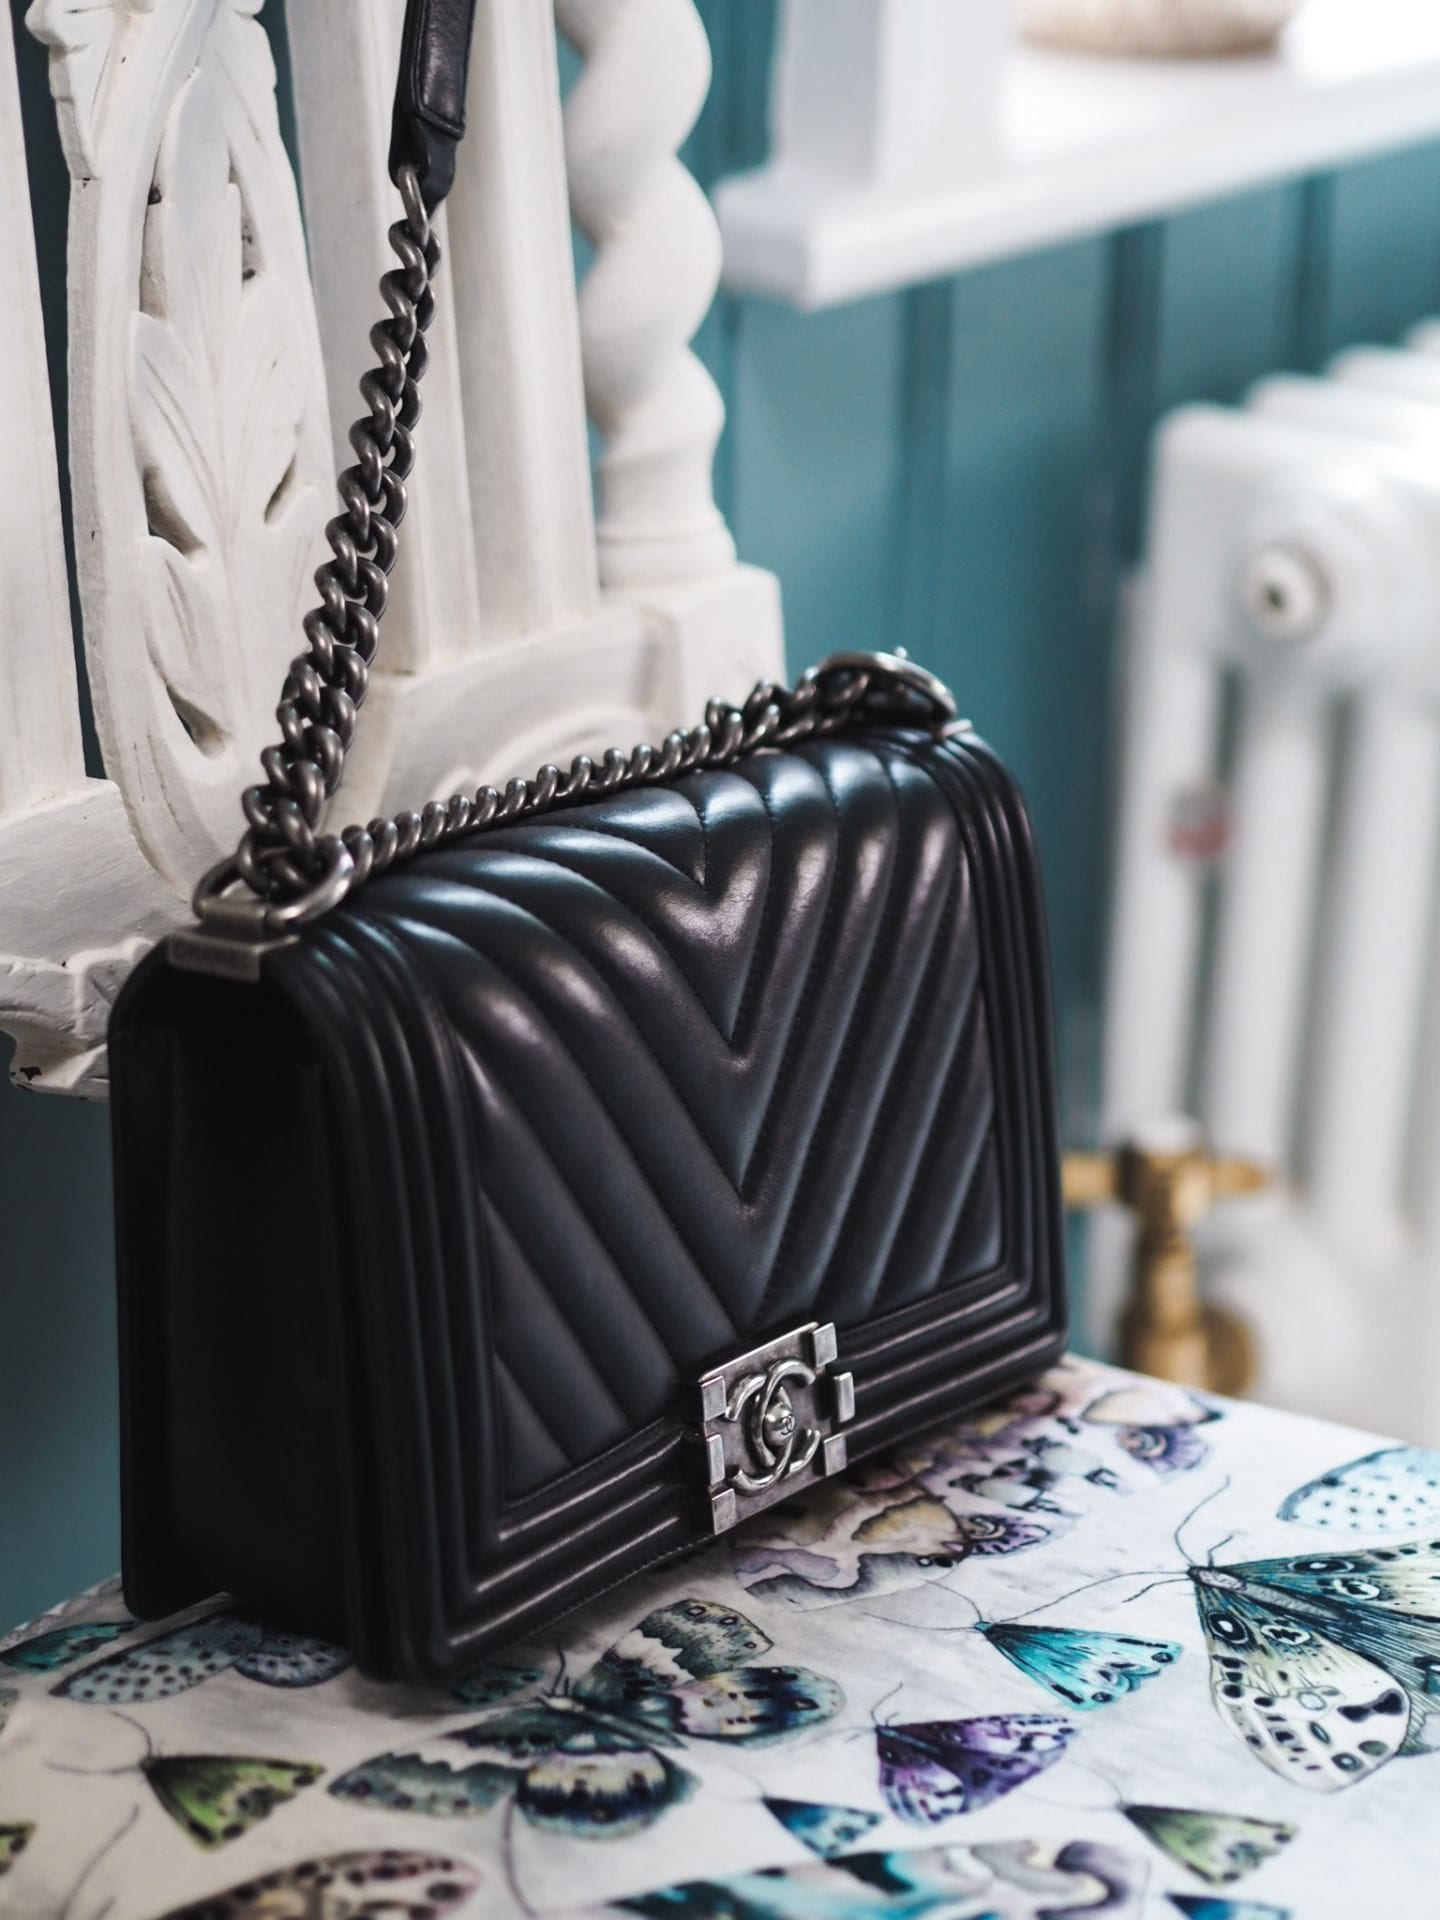 chanel boy bag review what you need to know price authenticity how to authenticate black chevron leather lambskin caviar leather handbag bag